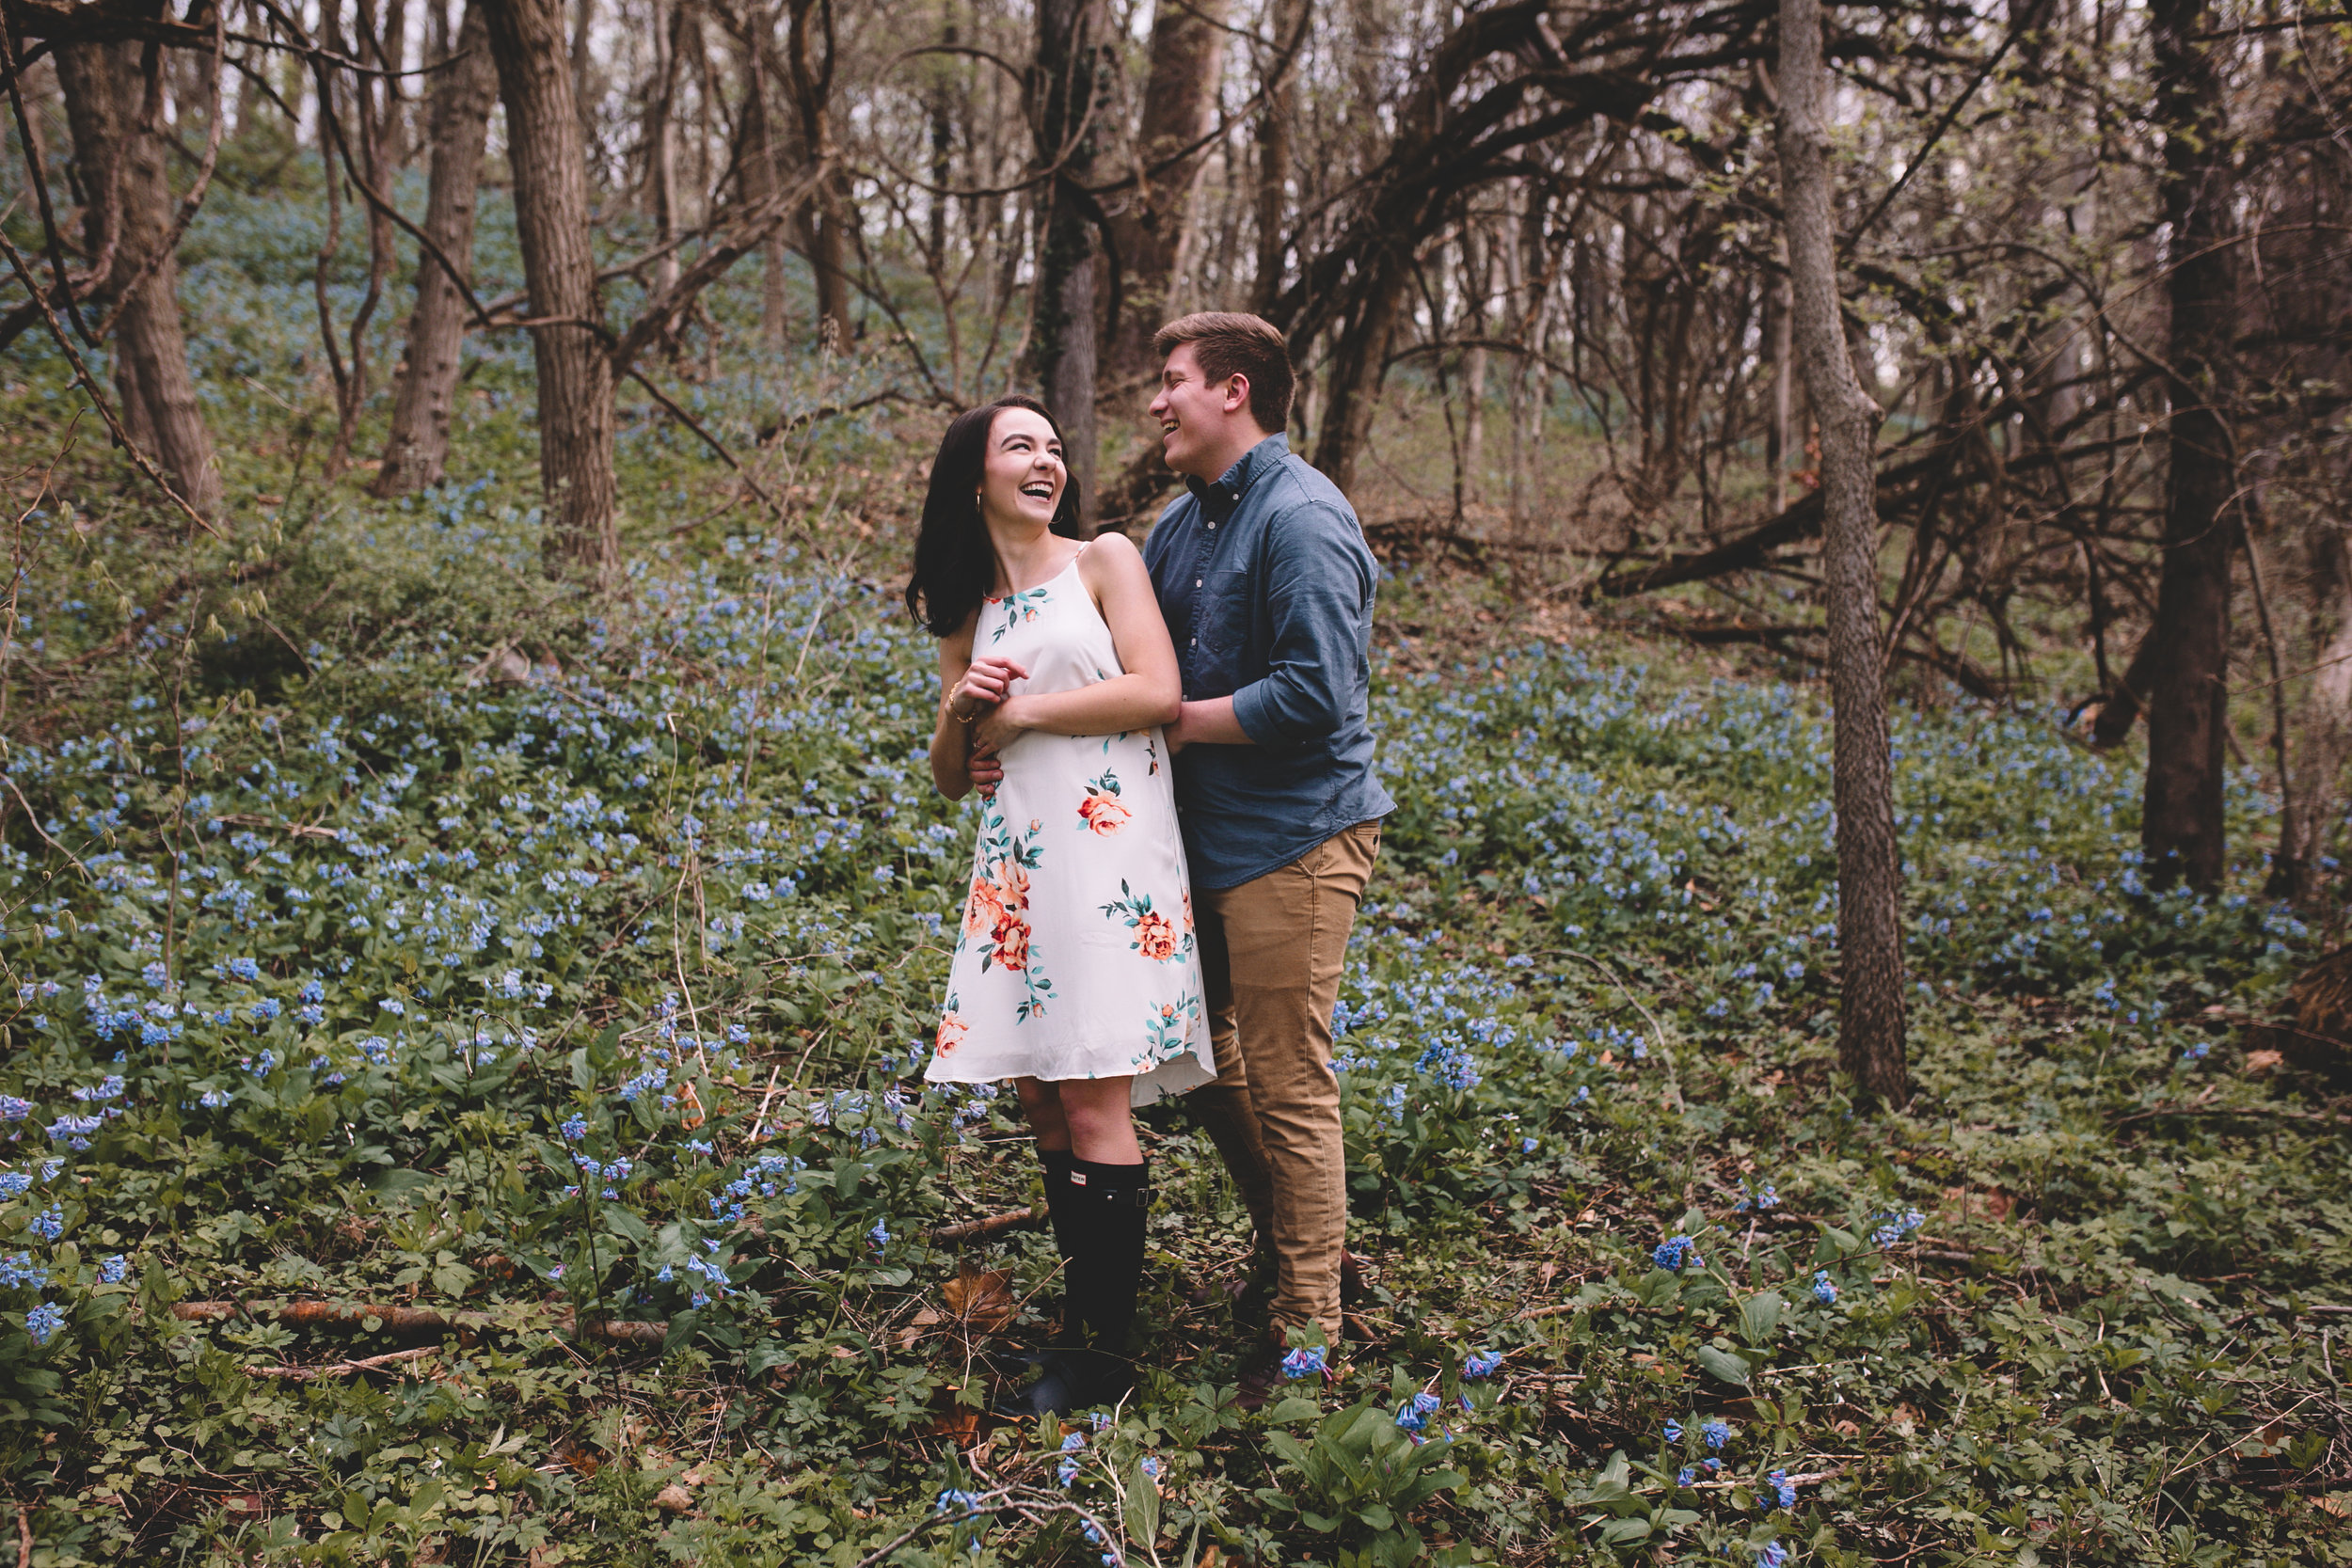 Will + Erin Engagement Photos at Prophetstown State Park  (81 of 183).jpg